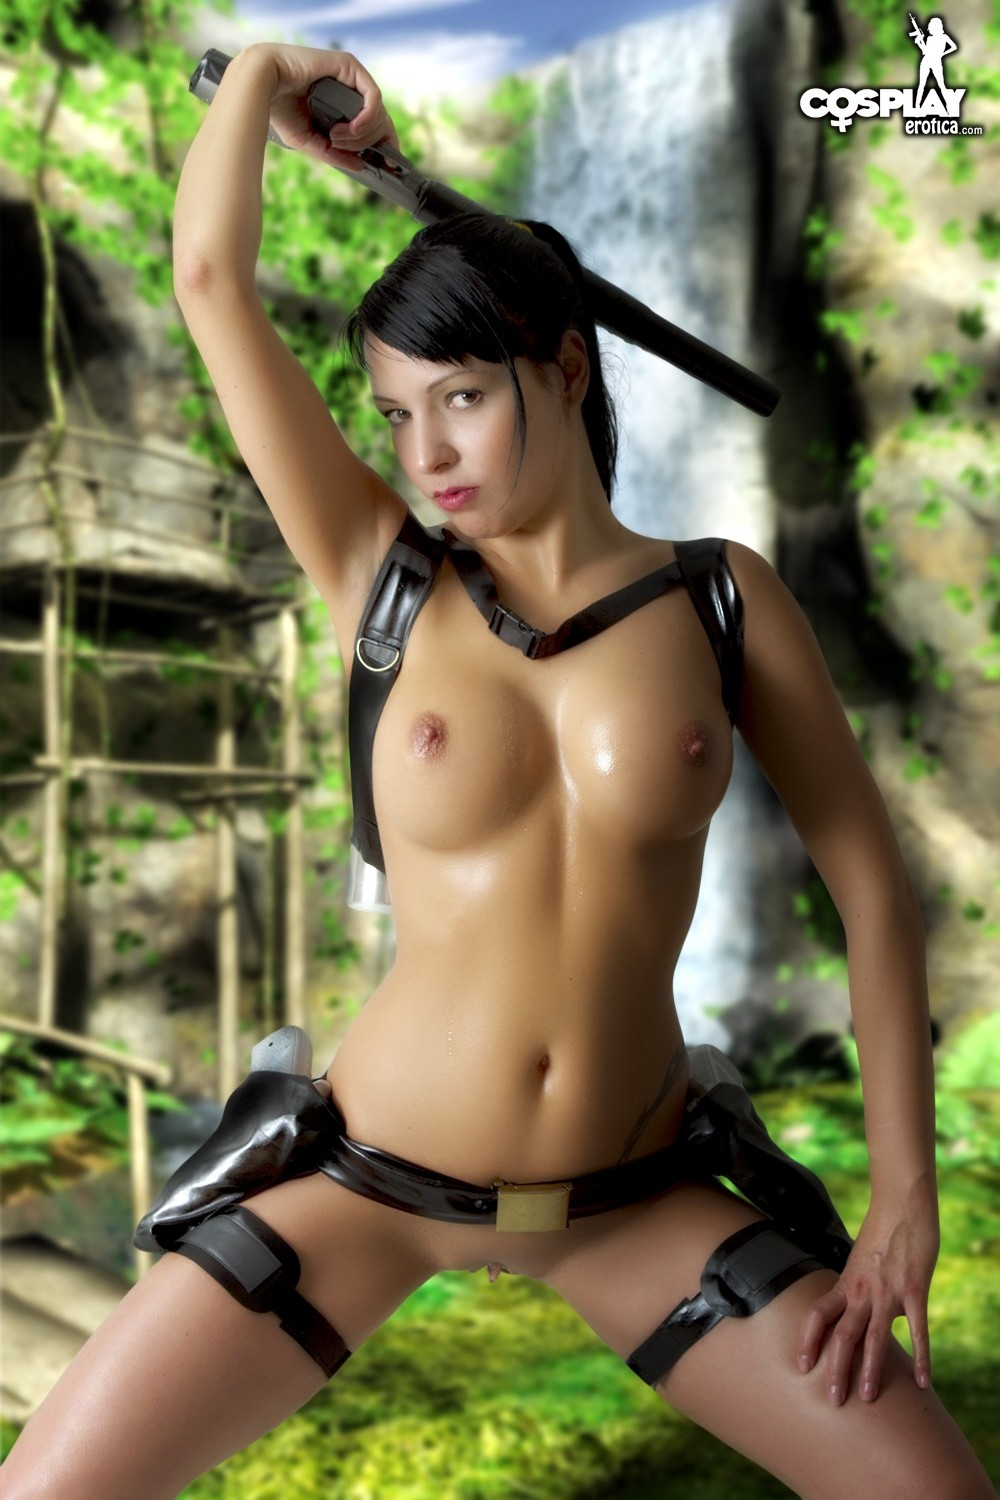 Sexy tomb raider cosplay nude erotic photos